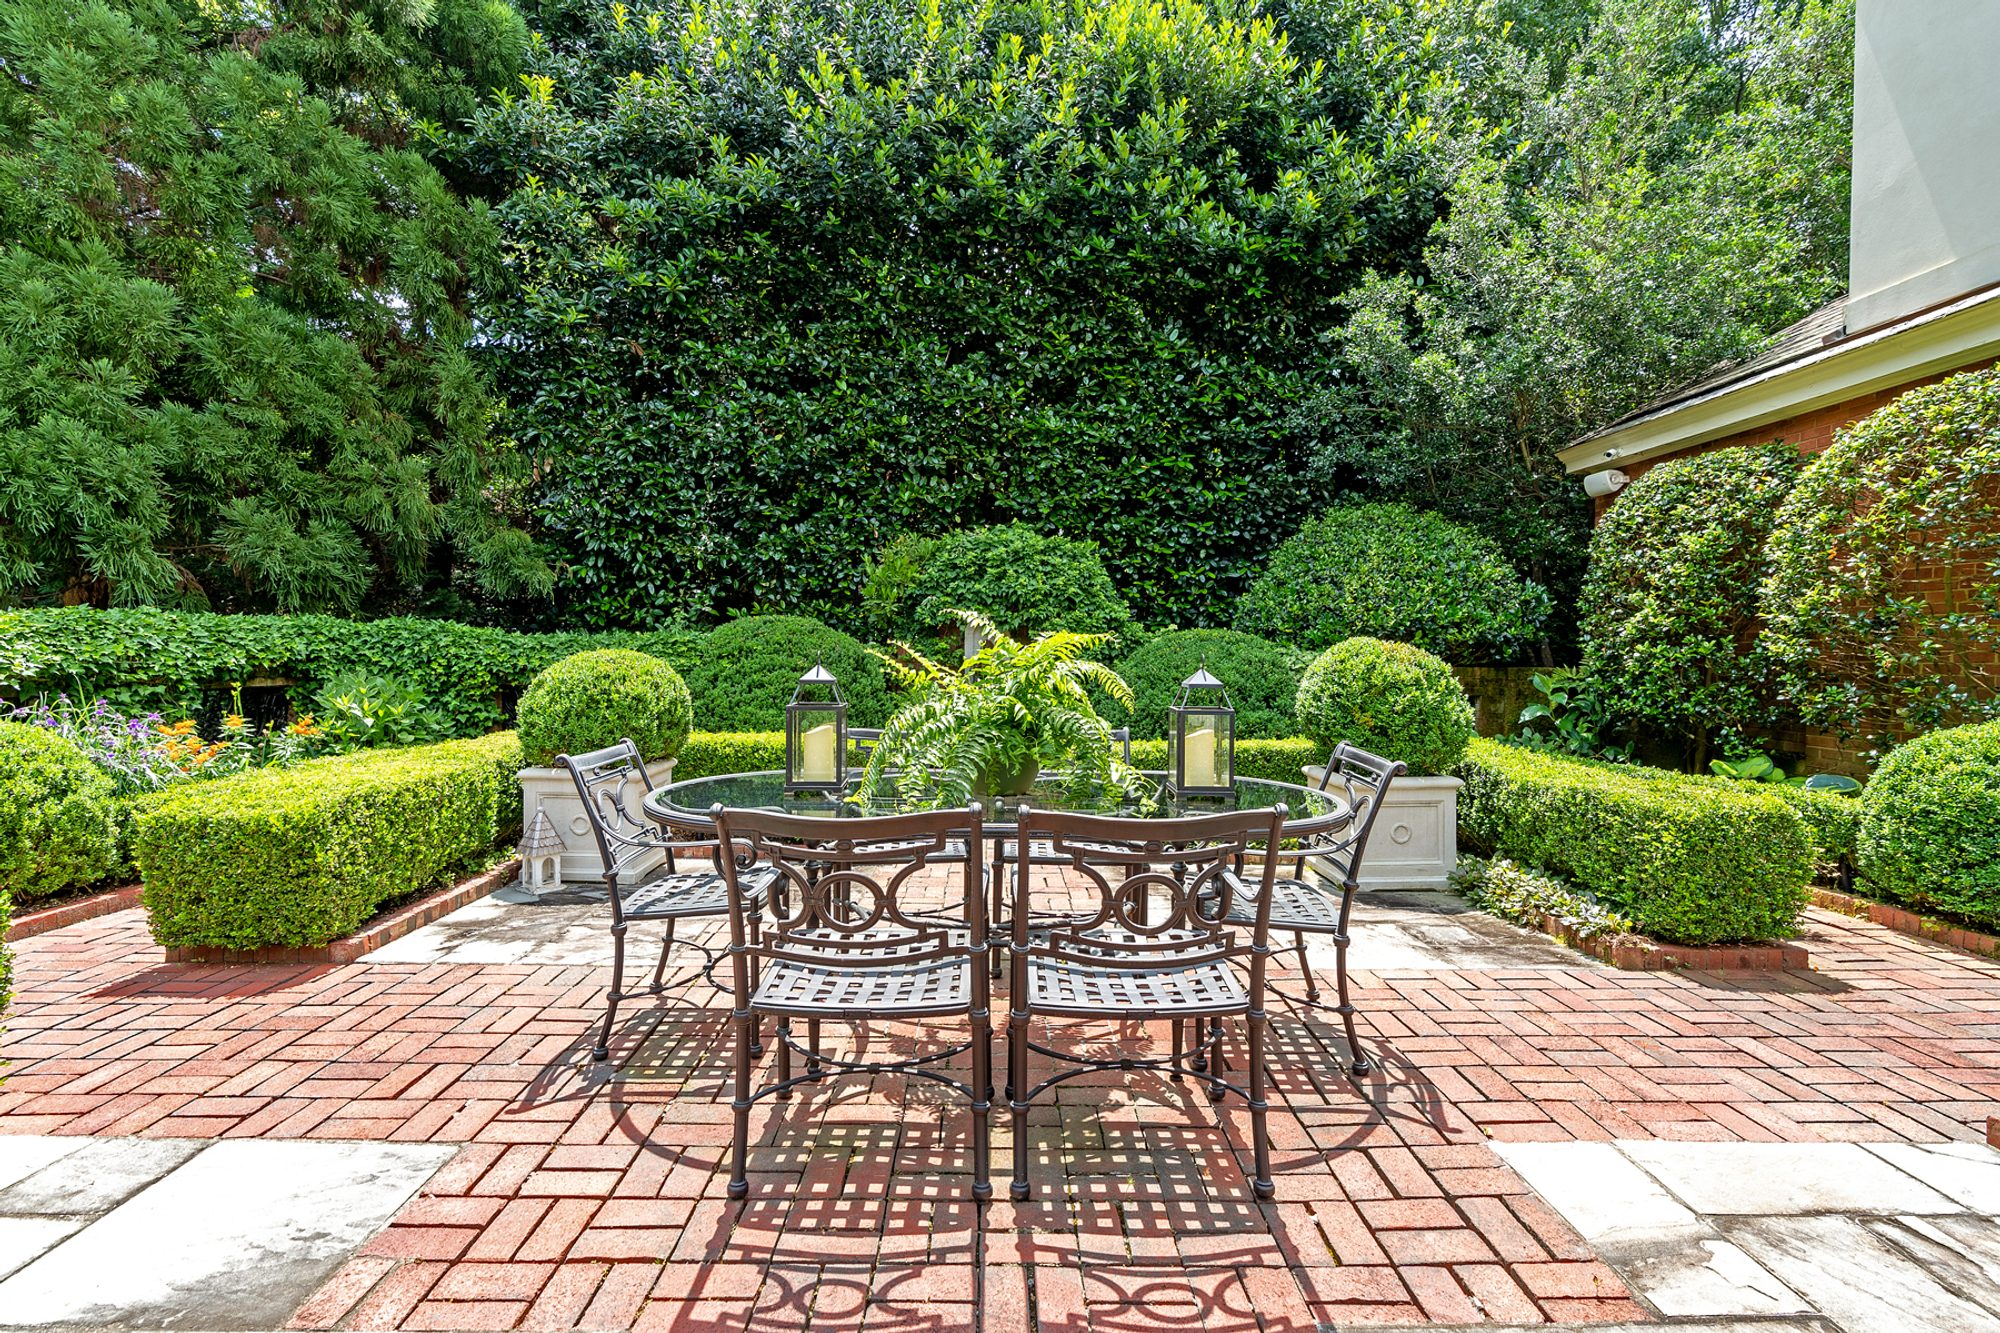 Red Brick Patio Ideas | DIY Paver Designs & Pictues on Red Paver Patio Ideas id=65292